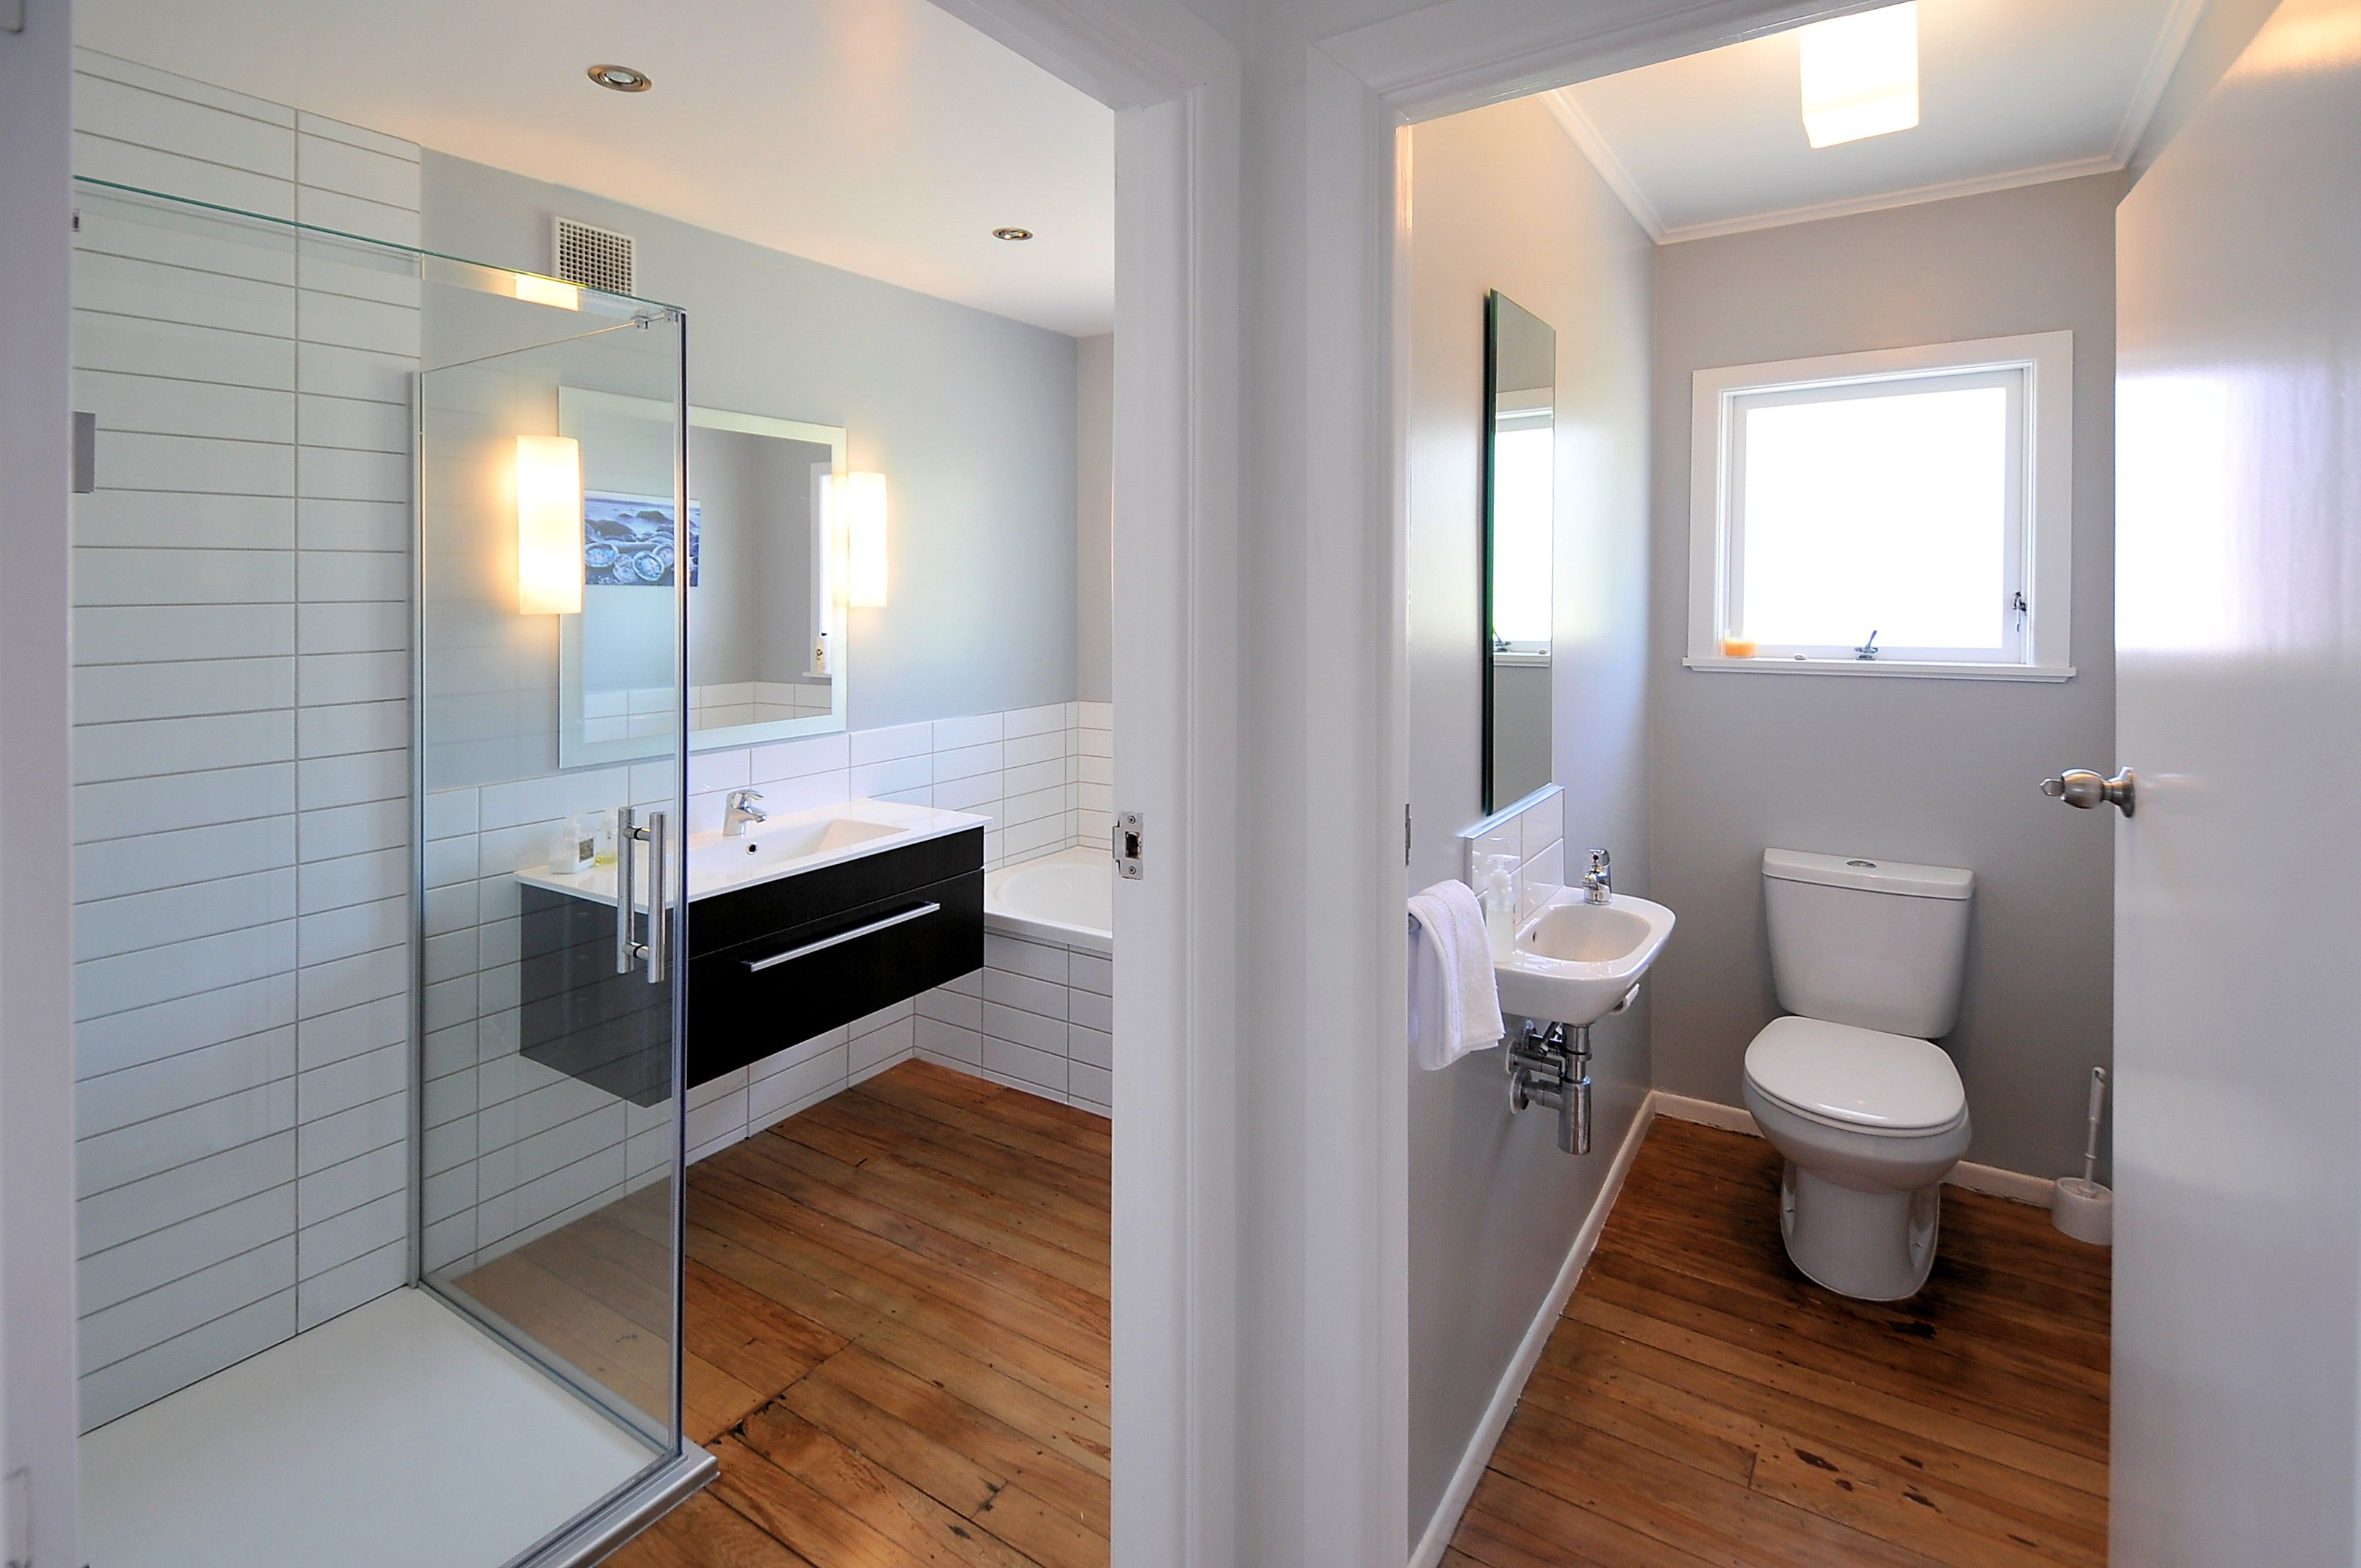 White Bathrooms Nz bathroom renovations on a budget beulah ave bathroom